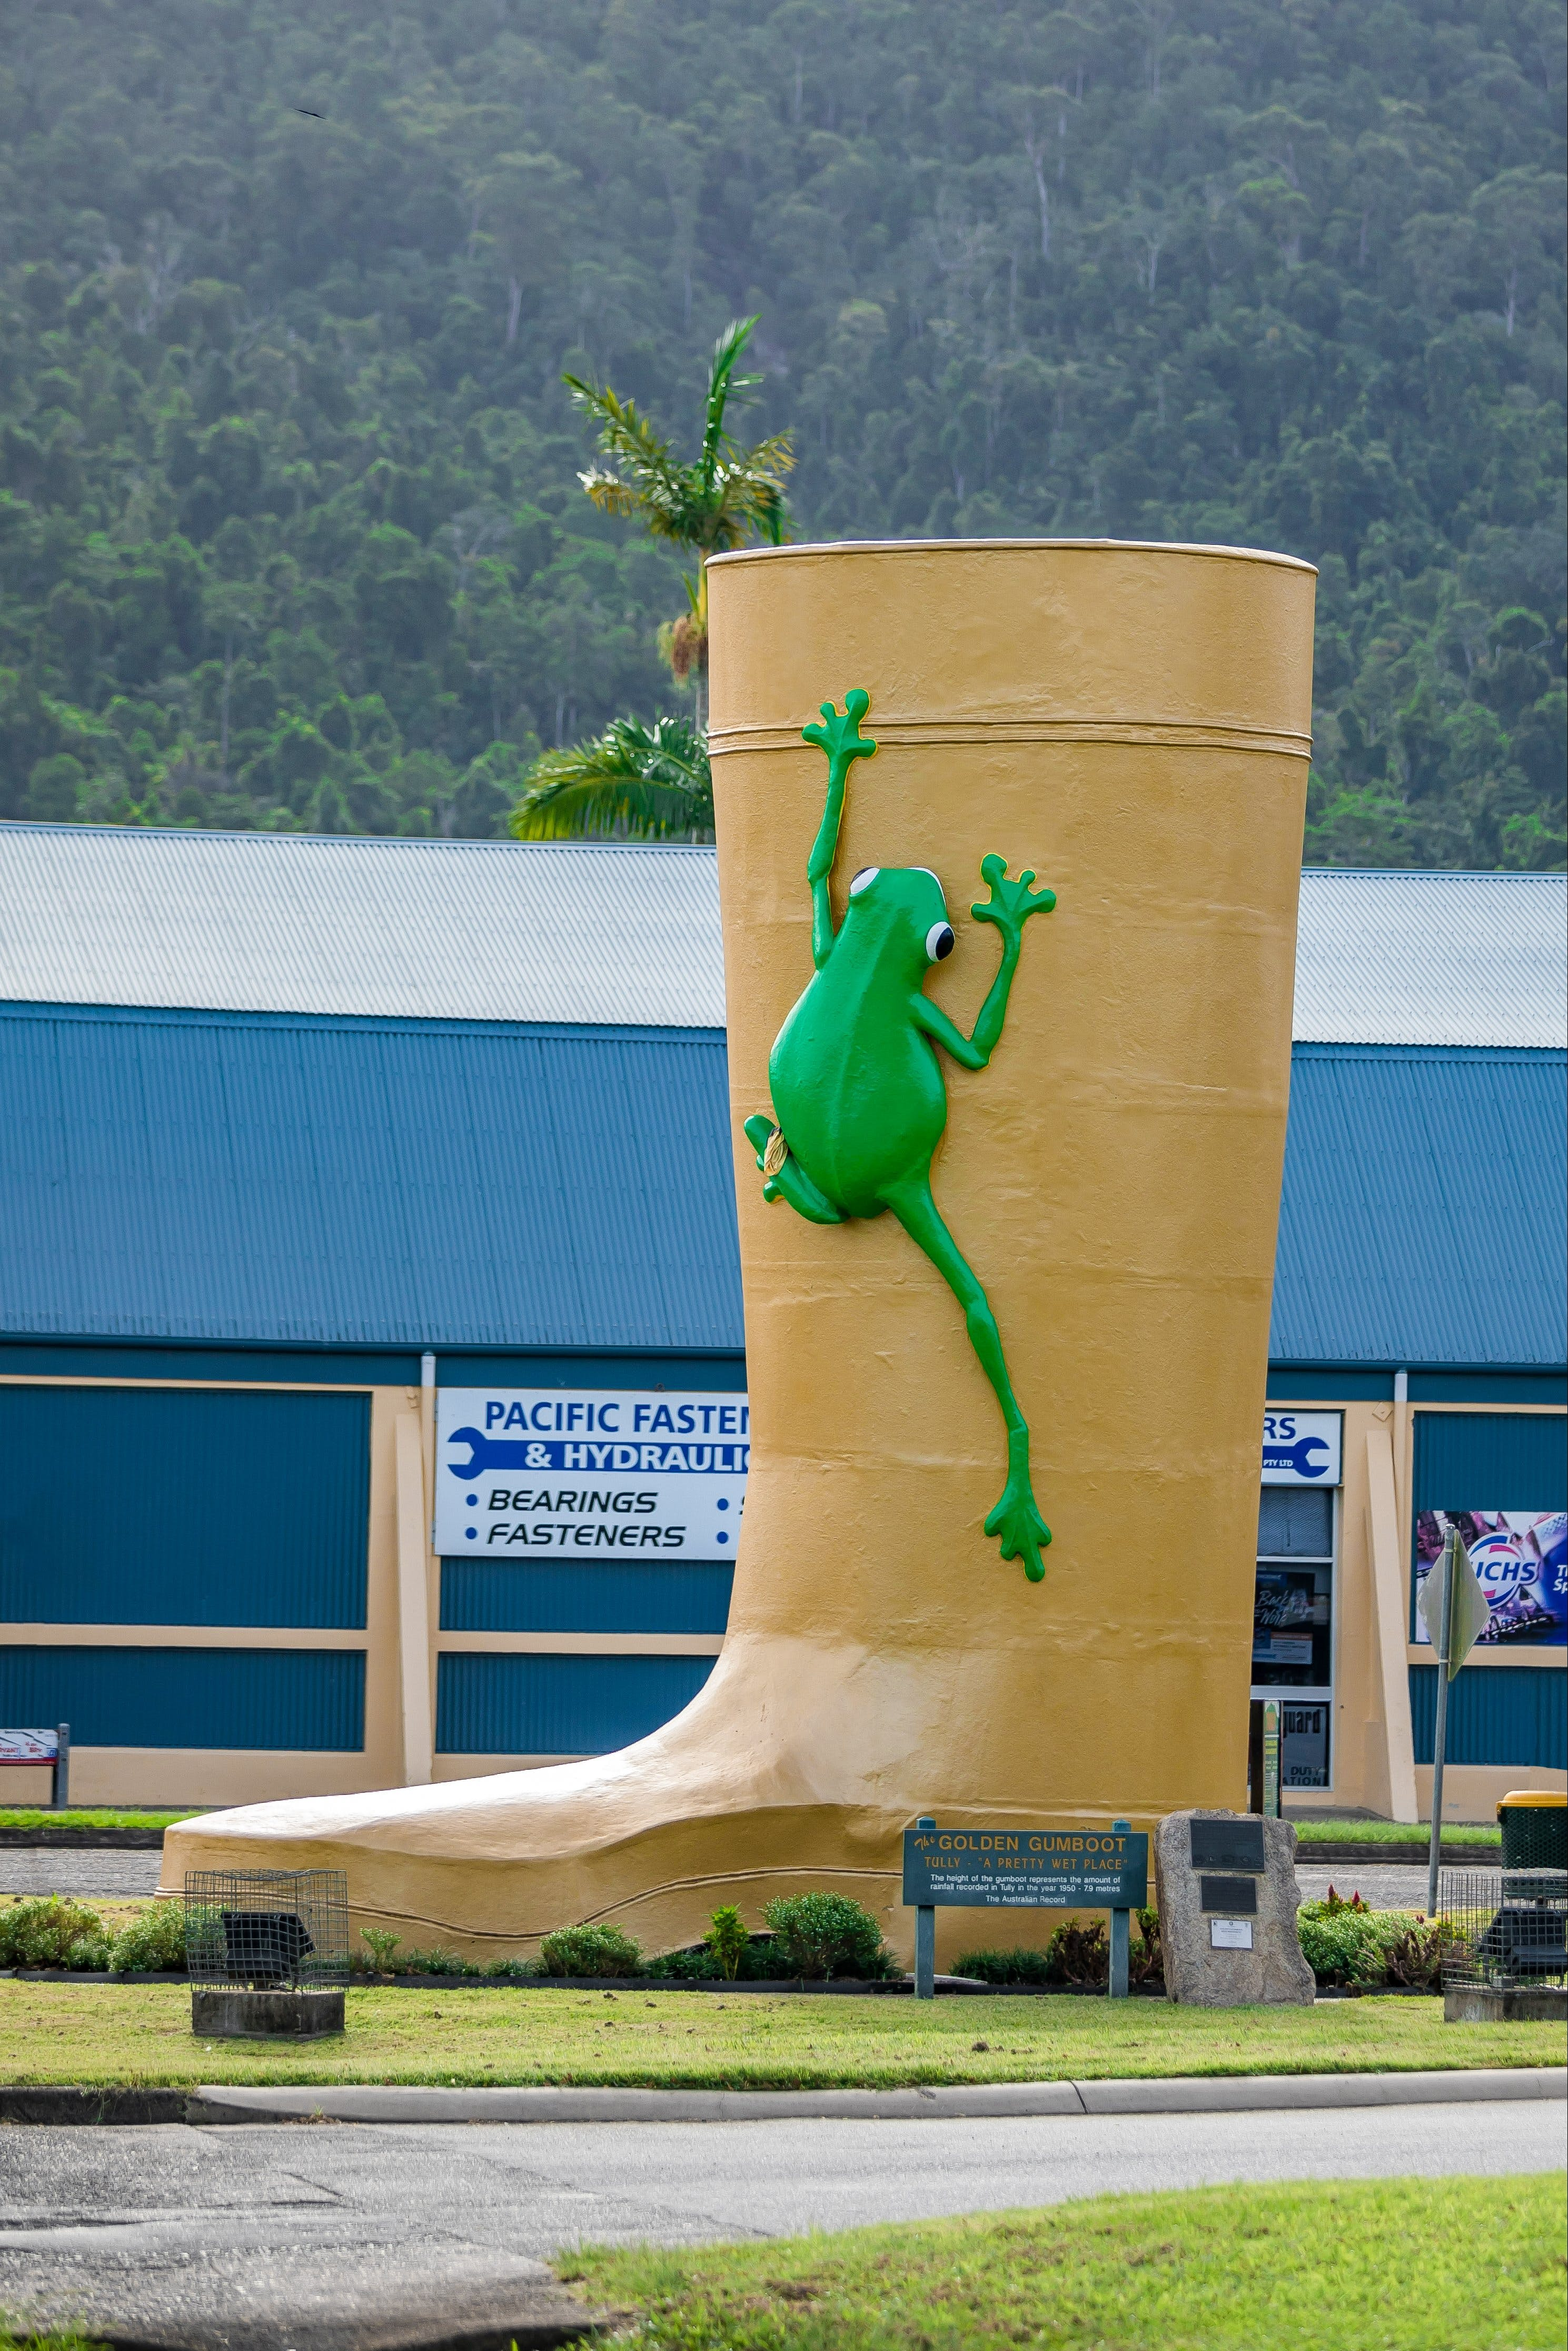 Tully Golden Gumboot - Tourism Cairns